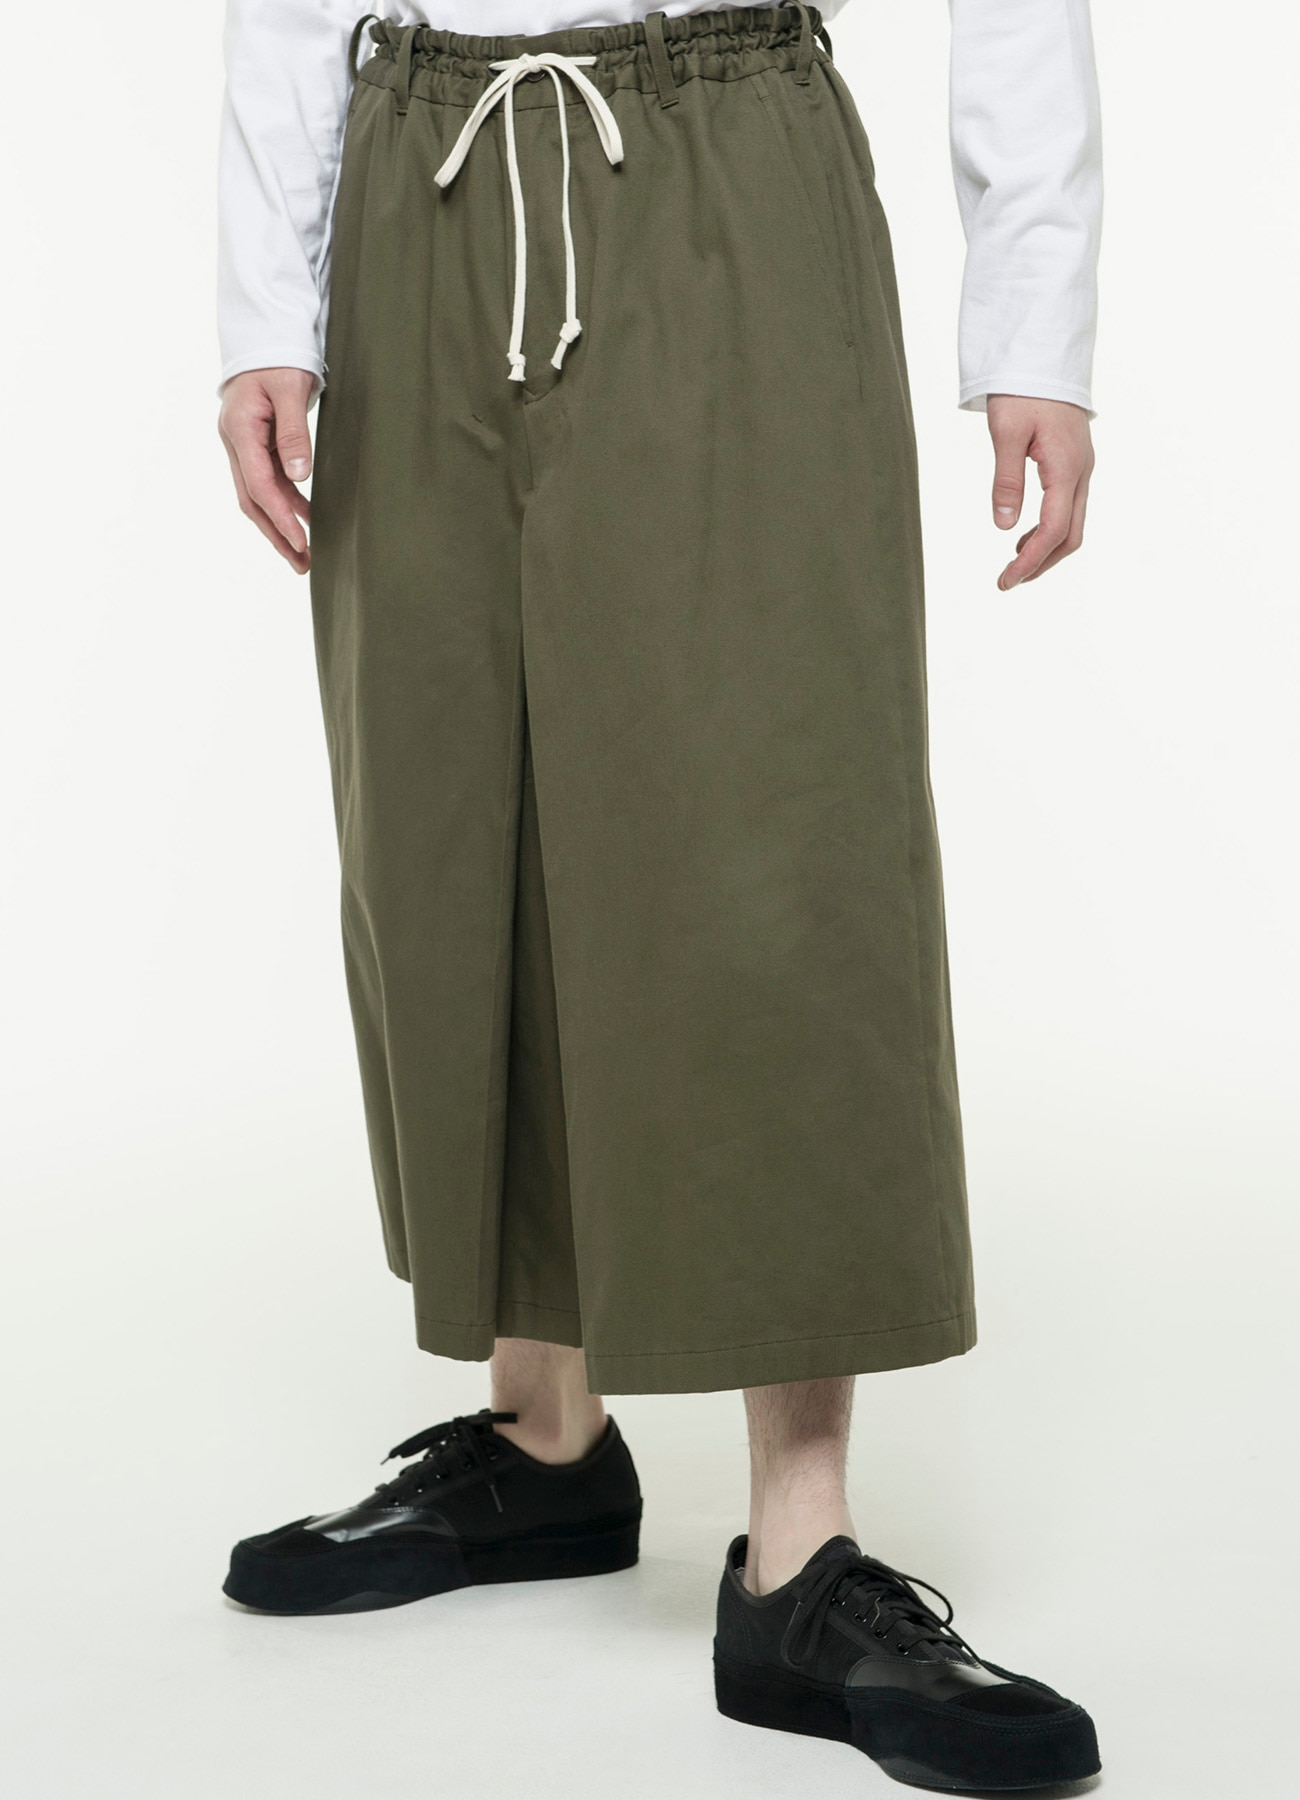 20/Cotton Twill Hakama Pants